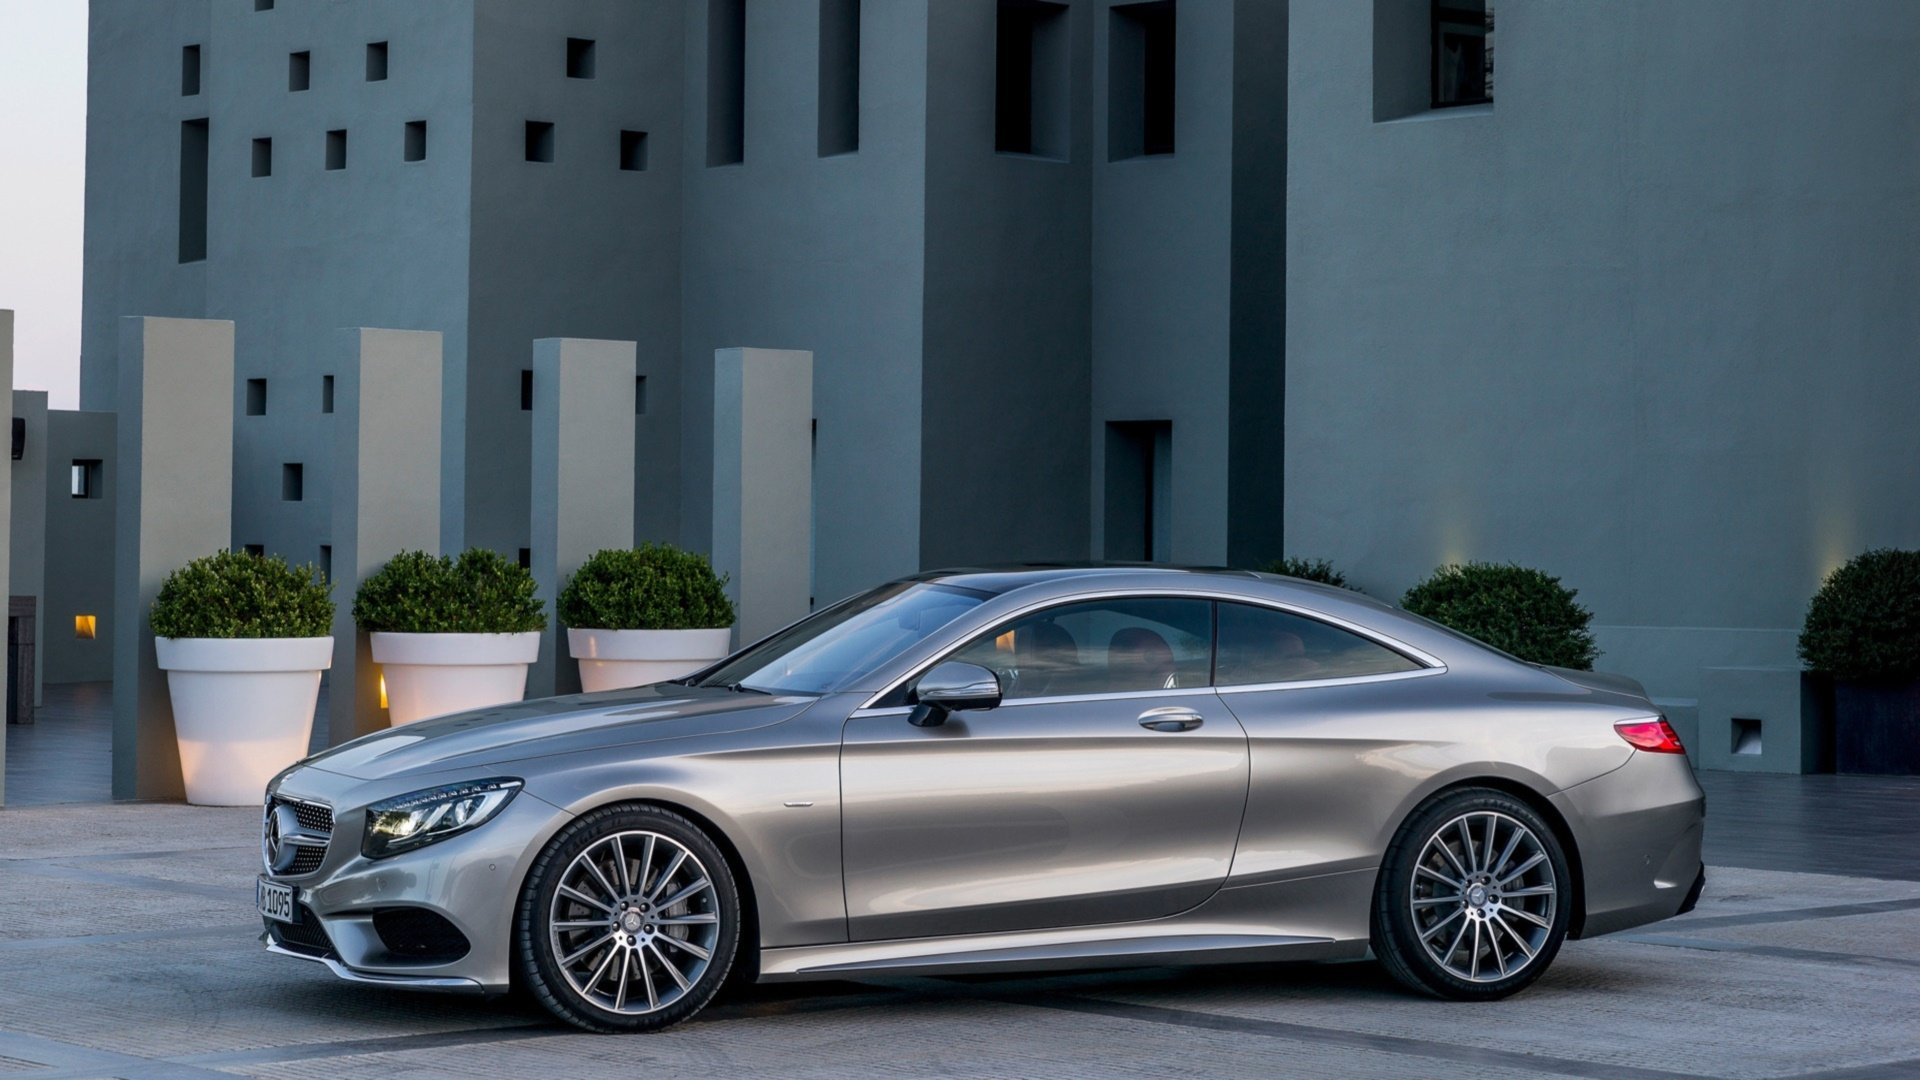 28 Mercedes Benz S Class Coupe Hd Wallpapers Background Images